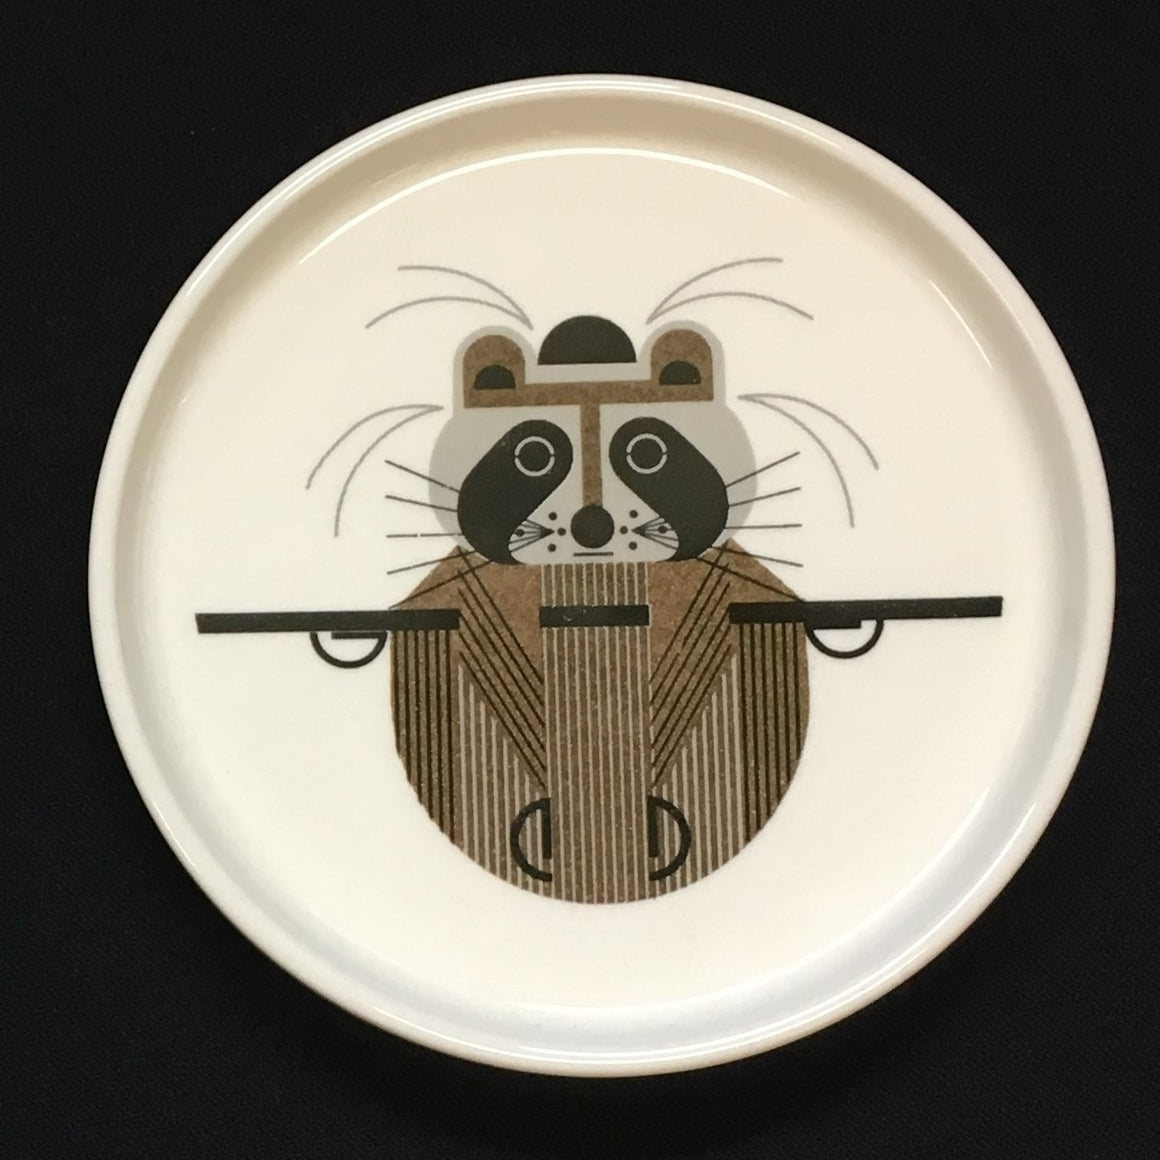 Charley Harper Racoon Dish - Todd & Holland Tea Merchants